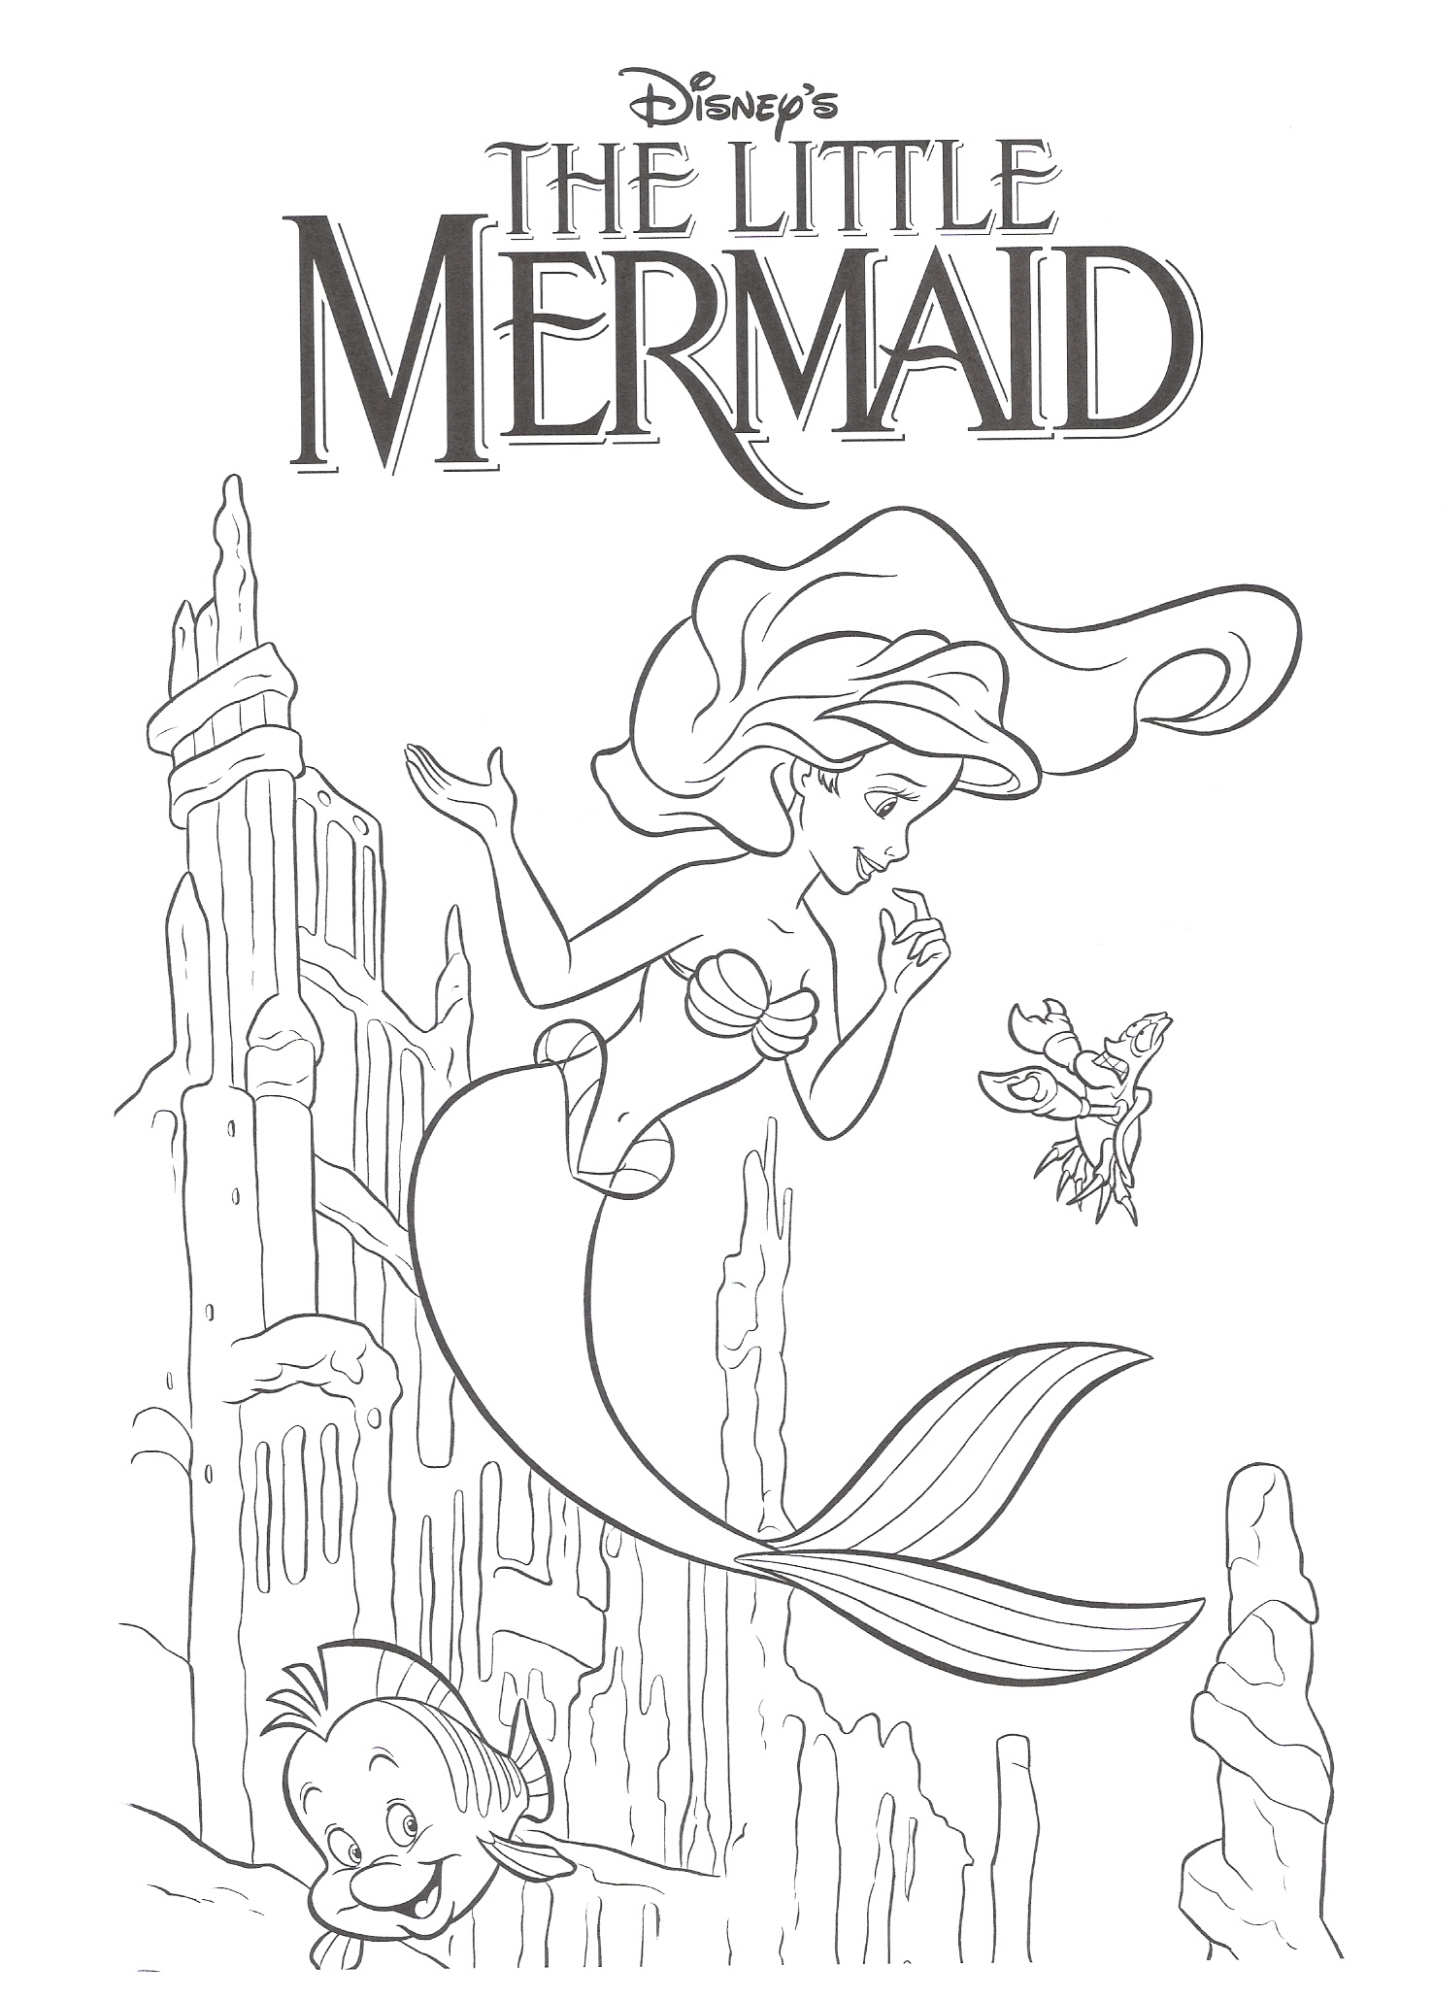 Mermaid Drawing For Kids at GetDrawings.com | Free for personal use ...